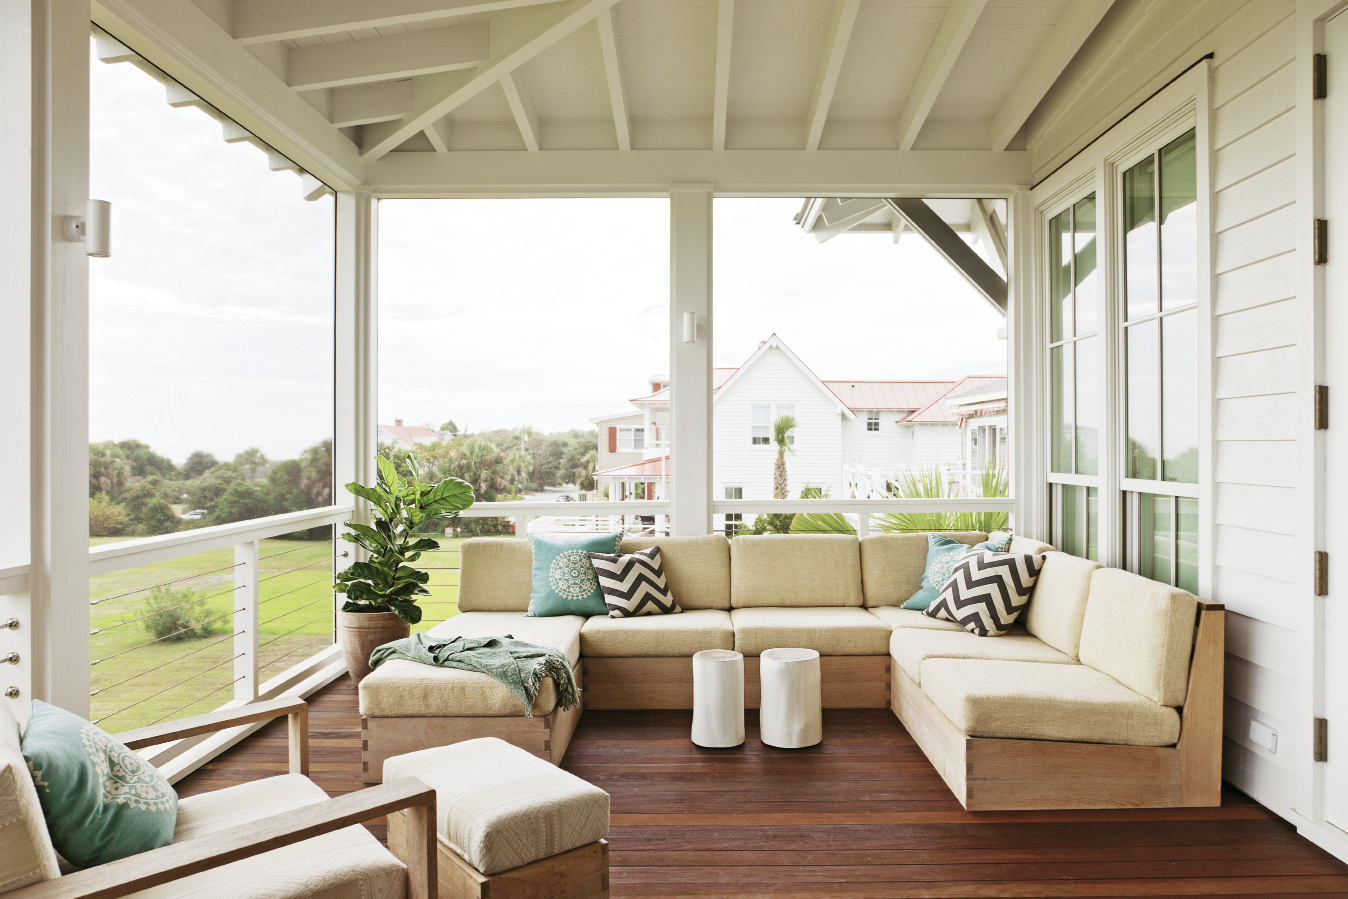 Furniture maker Brian Hall also made the teak porch sectional.